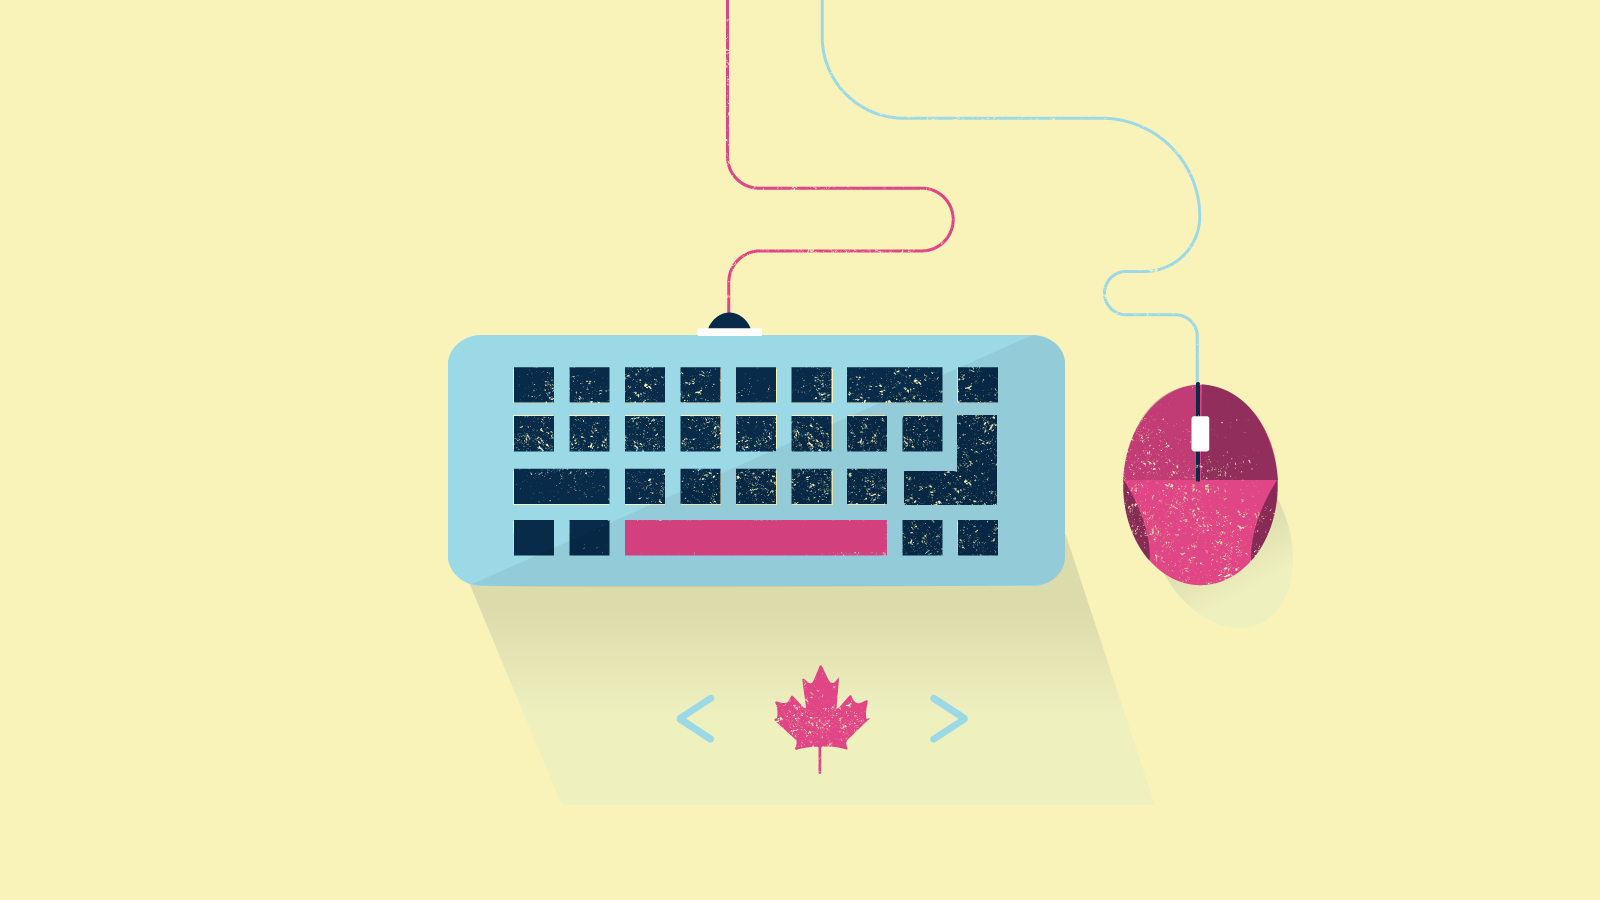 Illustration of Canadian maple leaf below keyboard and mouse.